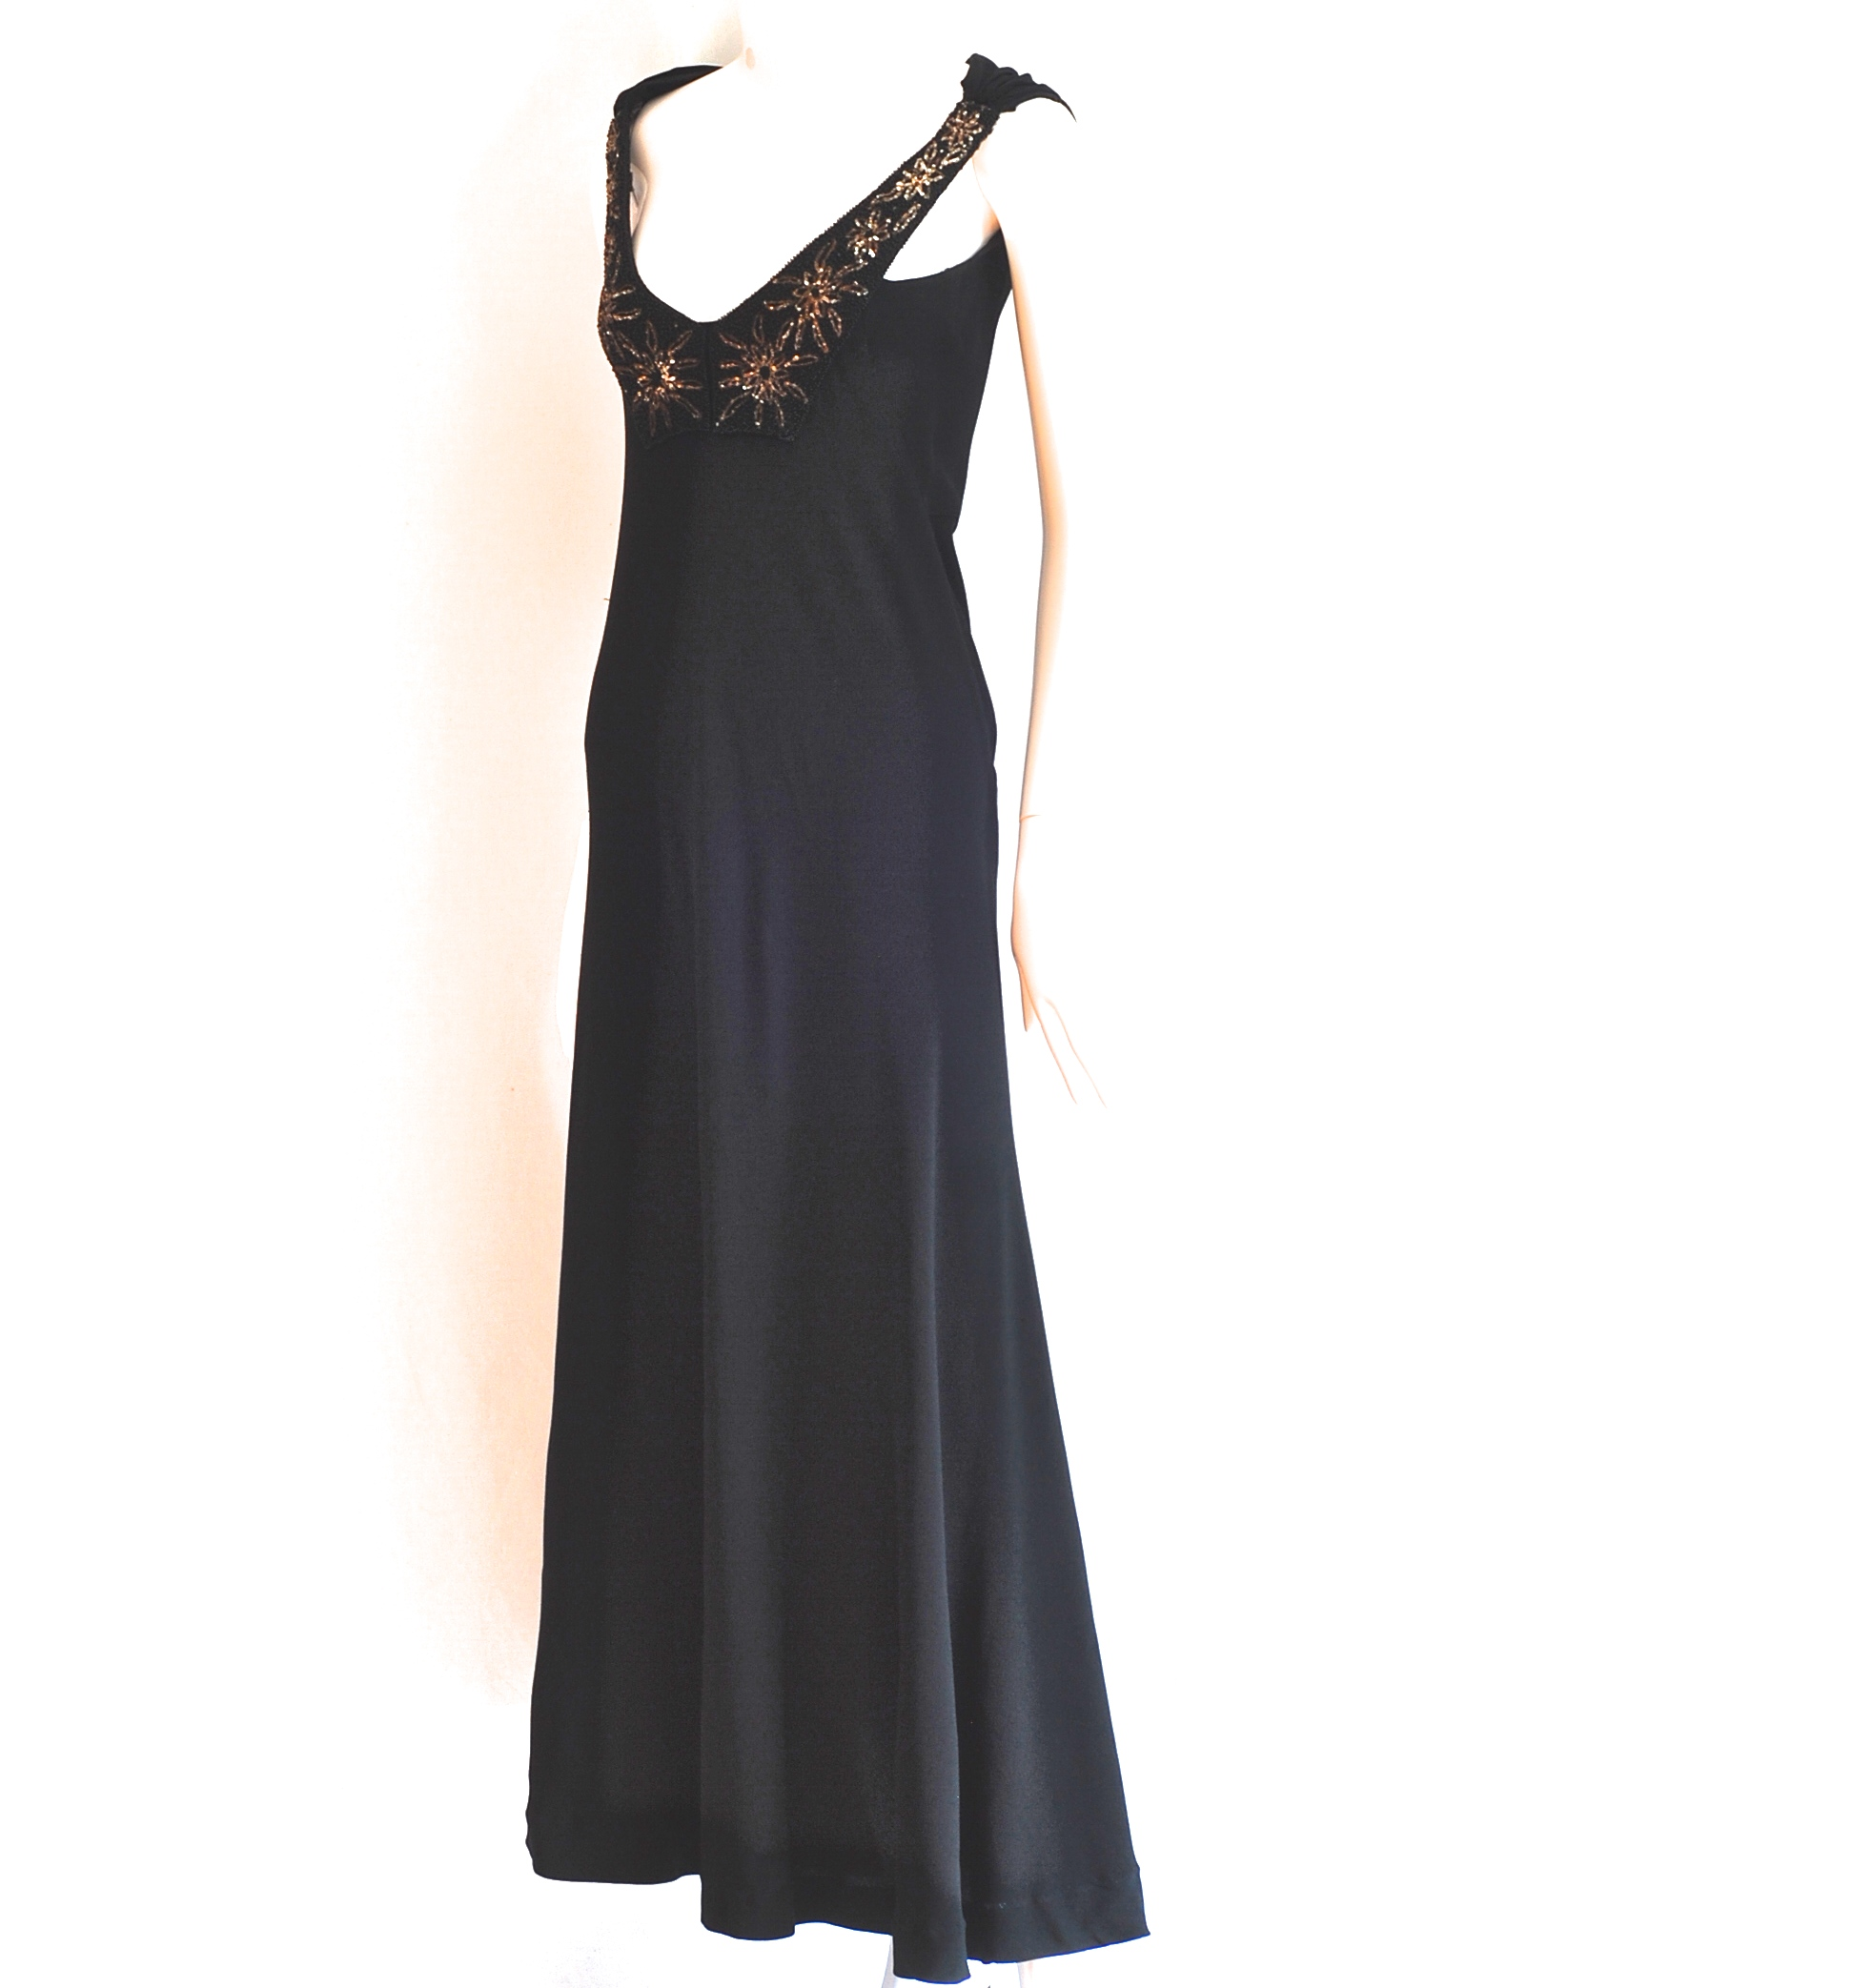 S.B. Watts & Co. 1930\'s Bias Cut Black Embellished Evening Gown ...